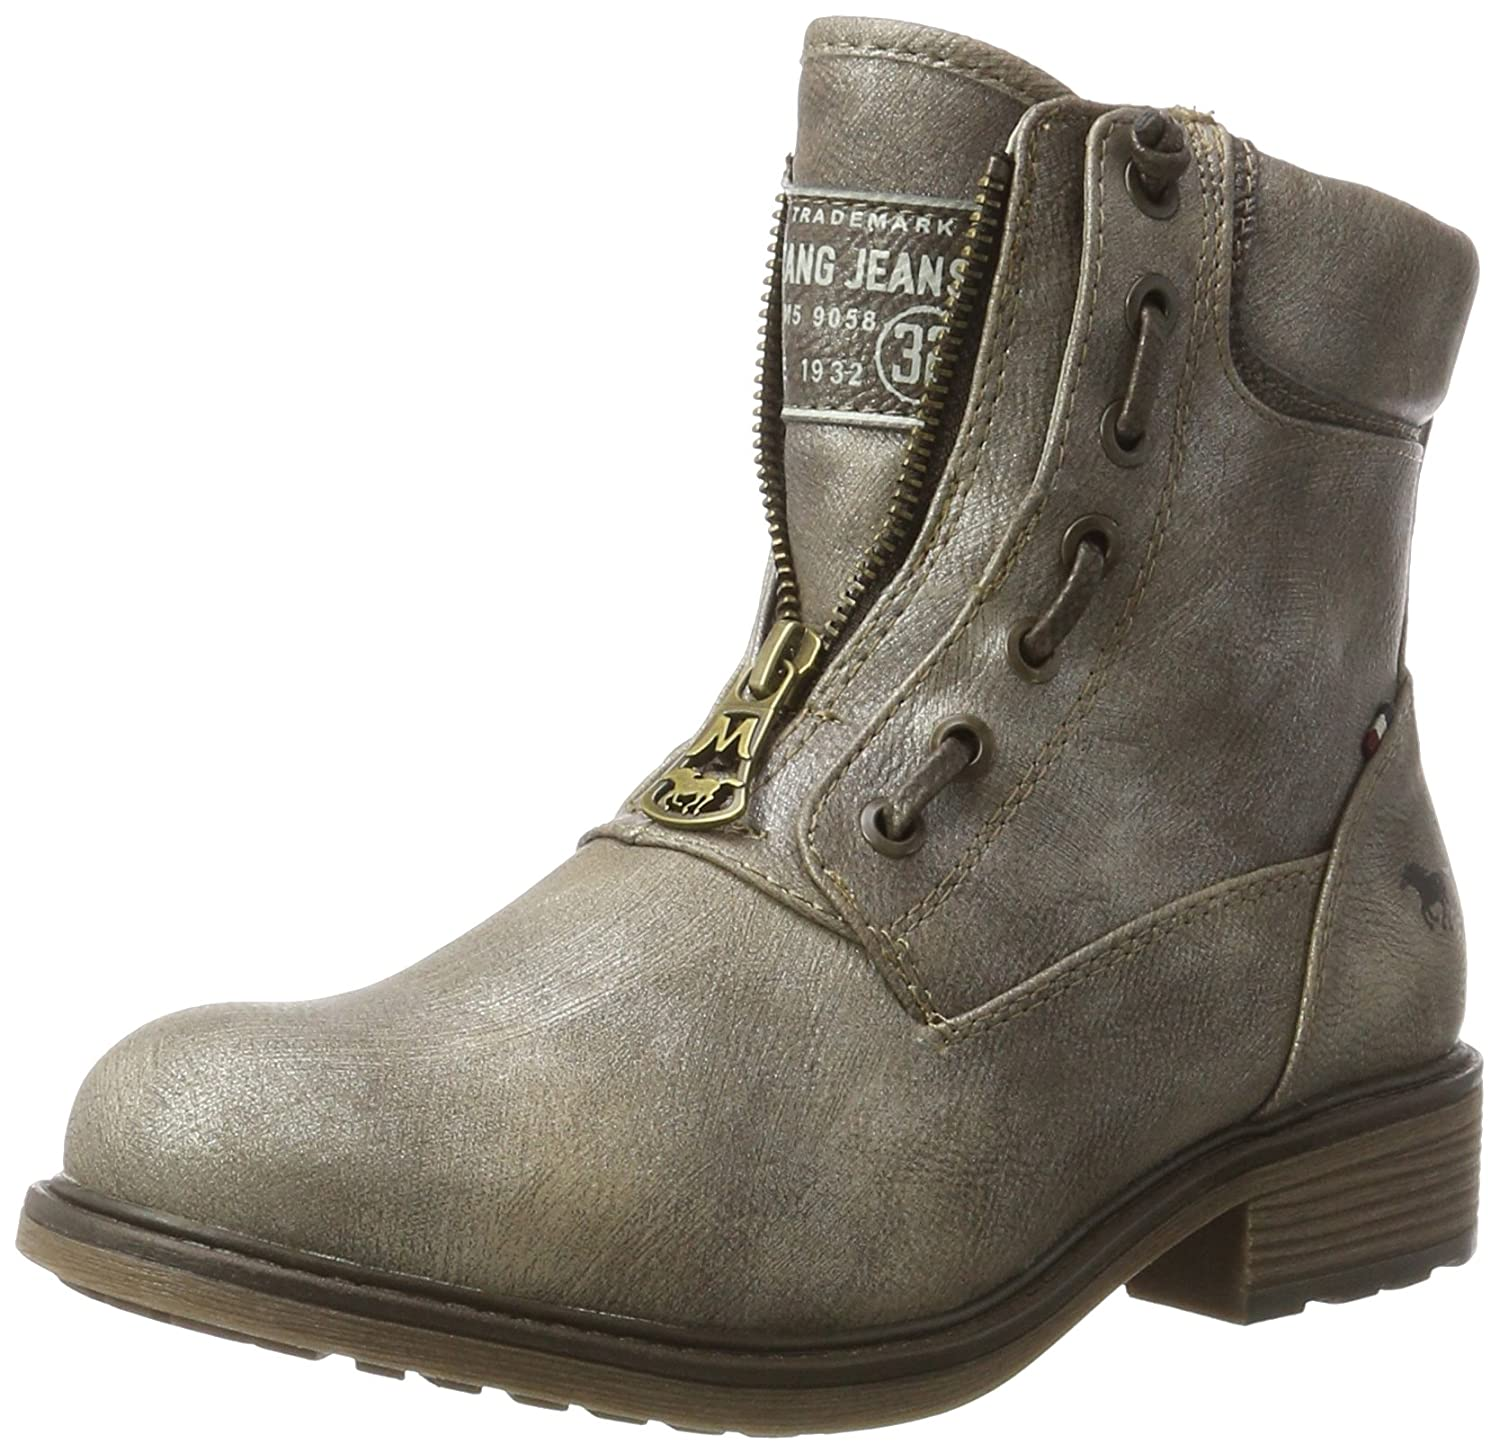 Mustang Femme 1264-605-258, Bottes Femme B00N3LHY70 Gris 1264-605-258, (Titan) efb29d3 - latesttechnology.space